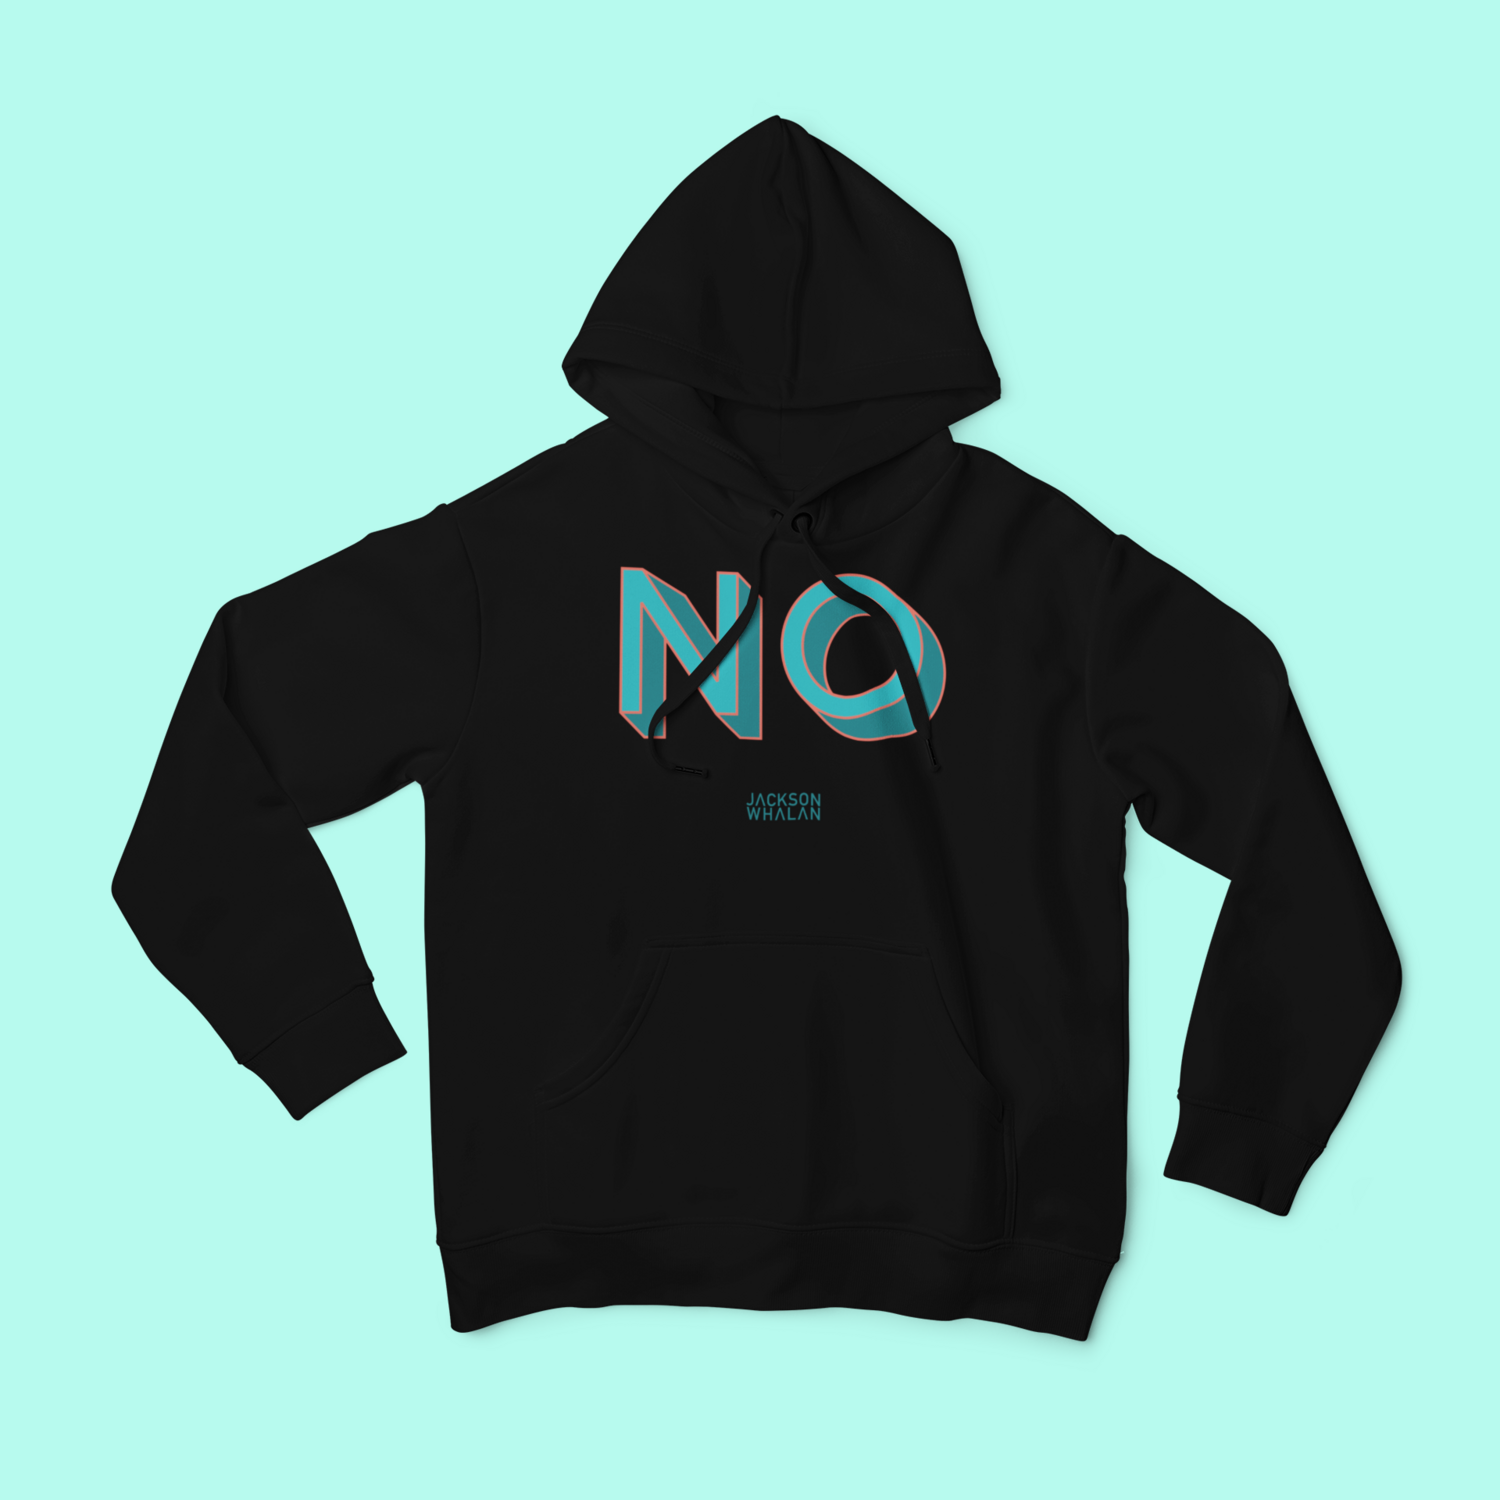 The No Hoodie